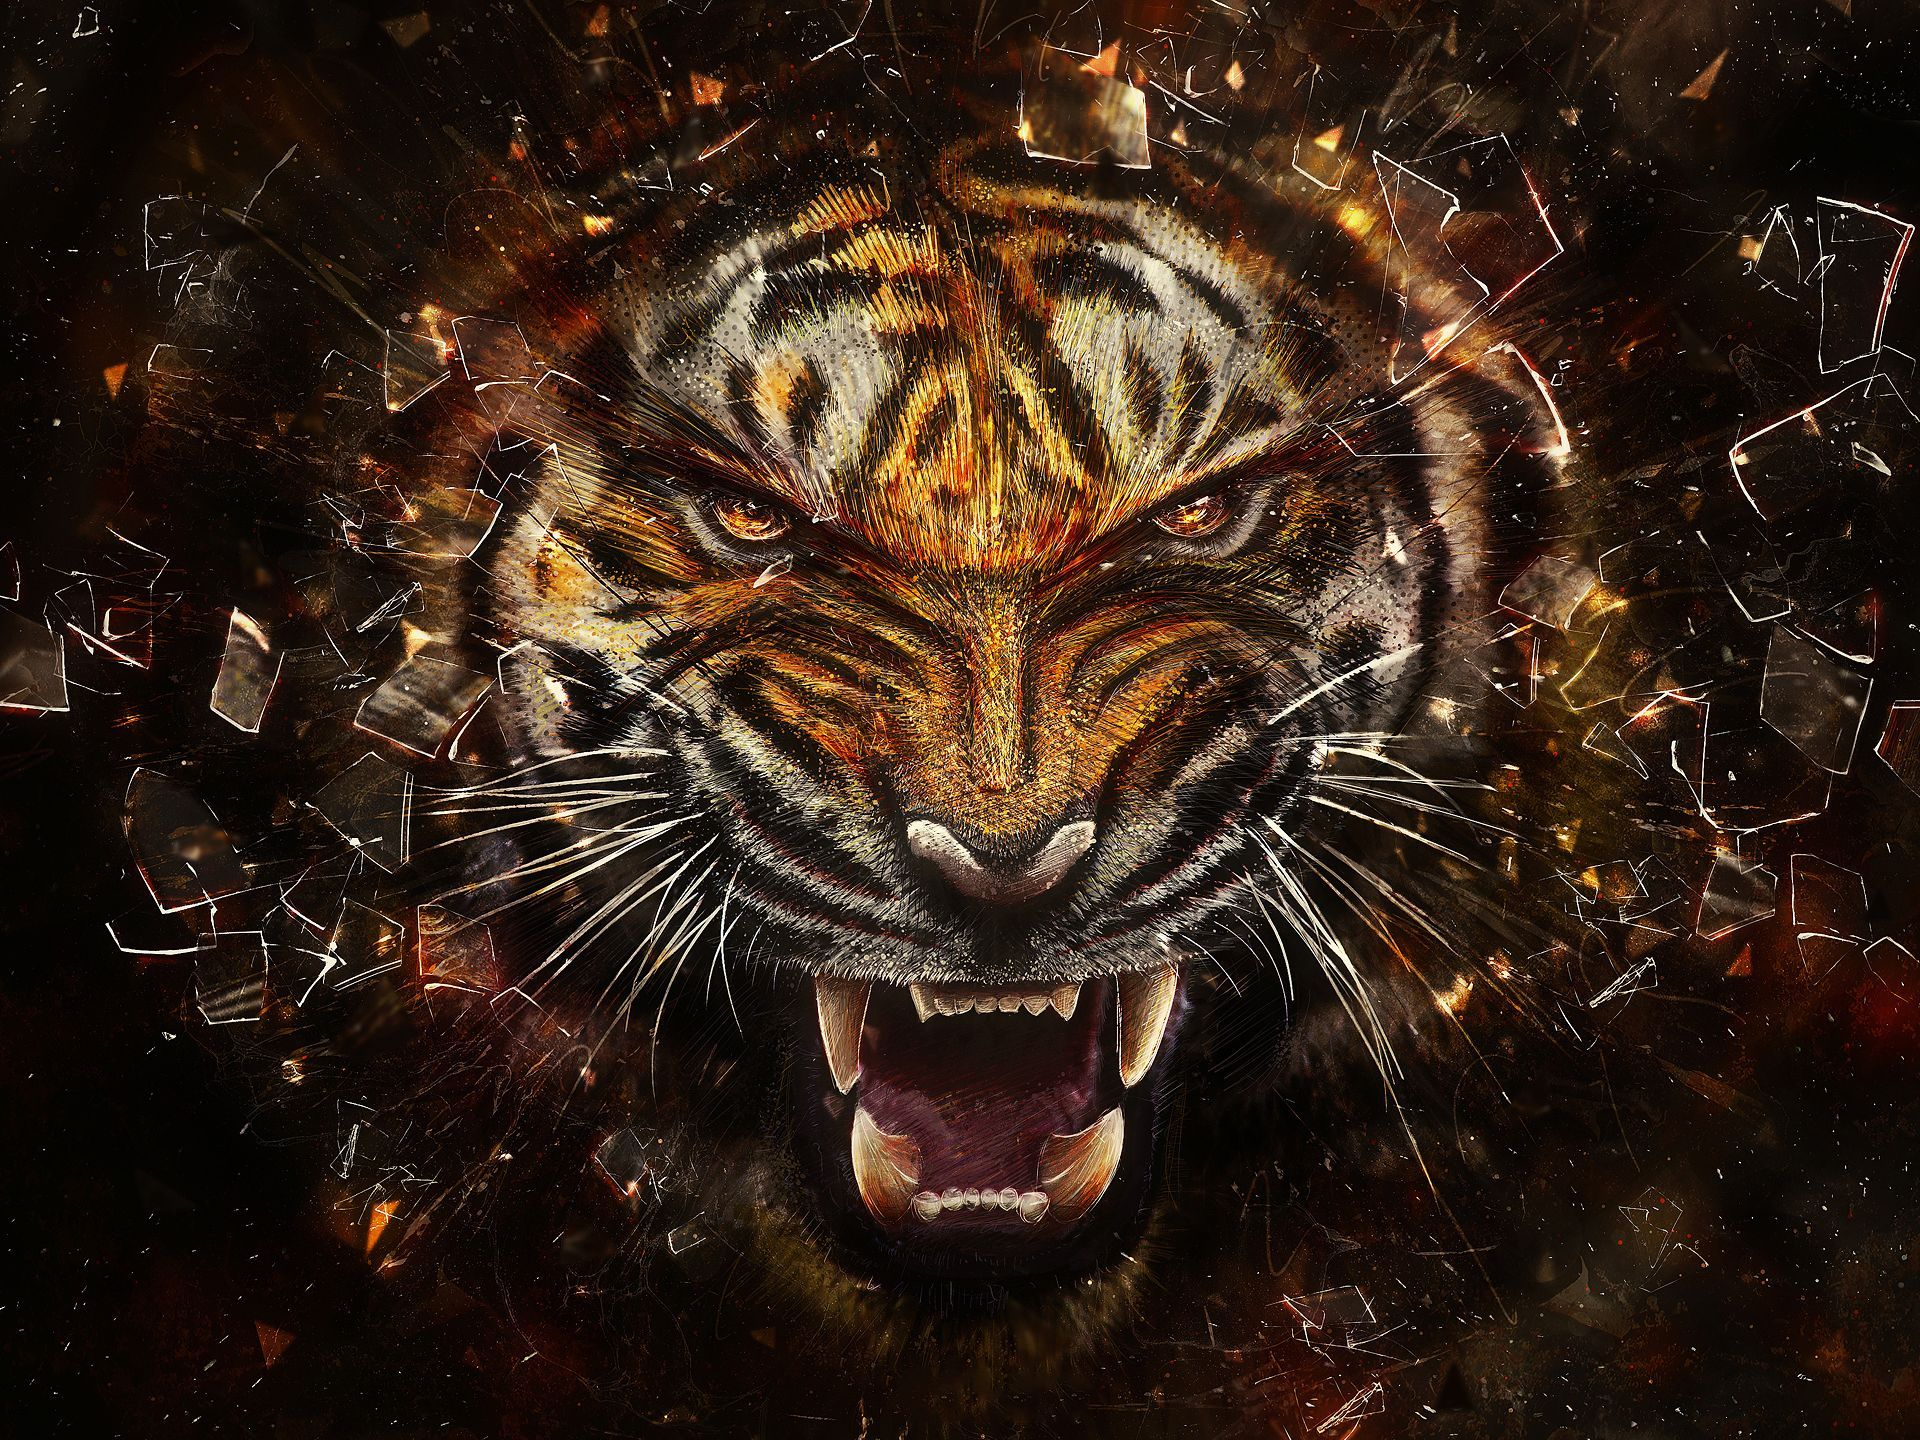 Angry Tiger Tiger Wallpaper Tiger Artwork Tiger Images